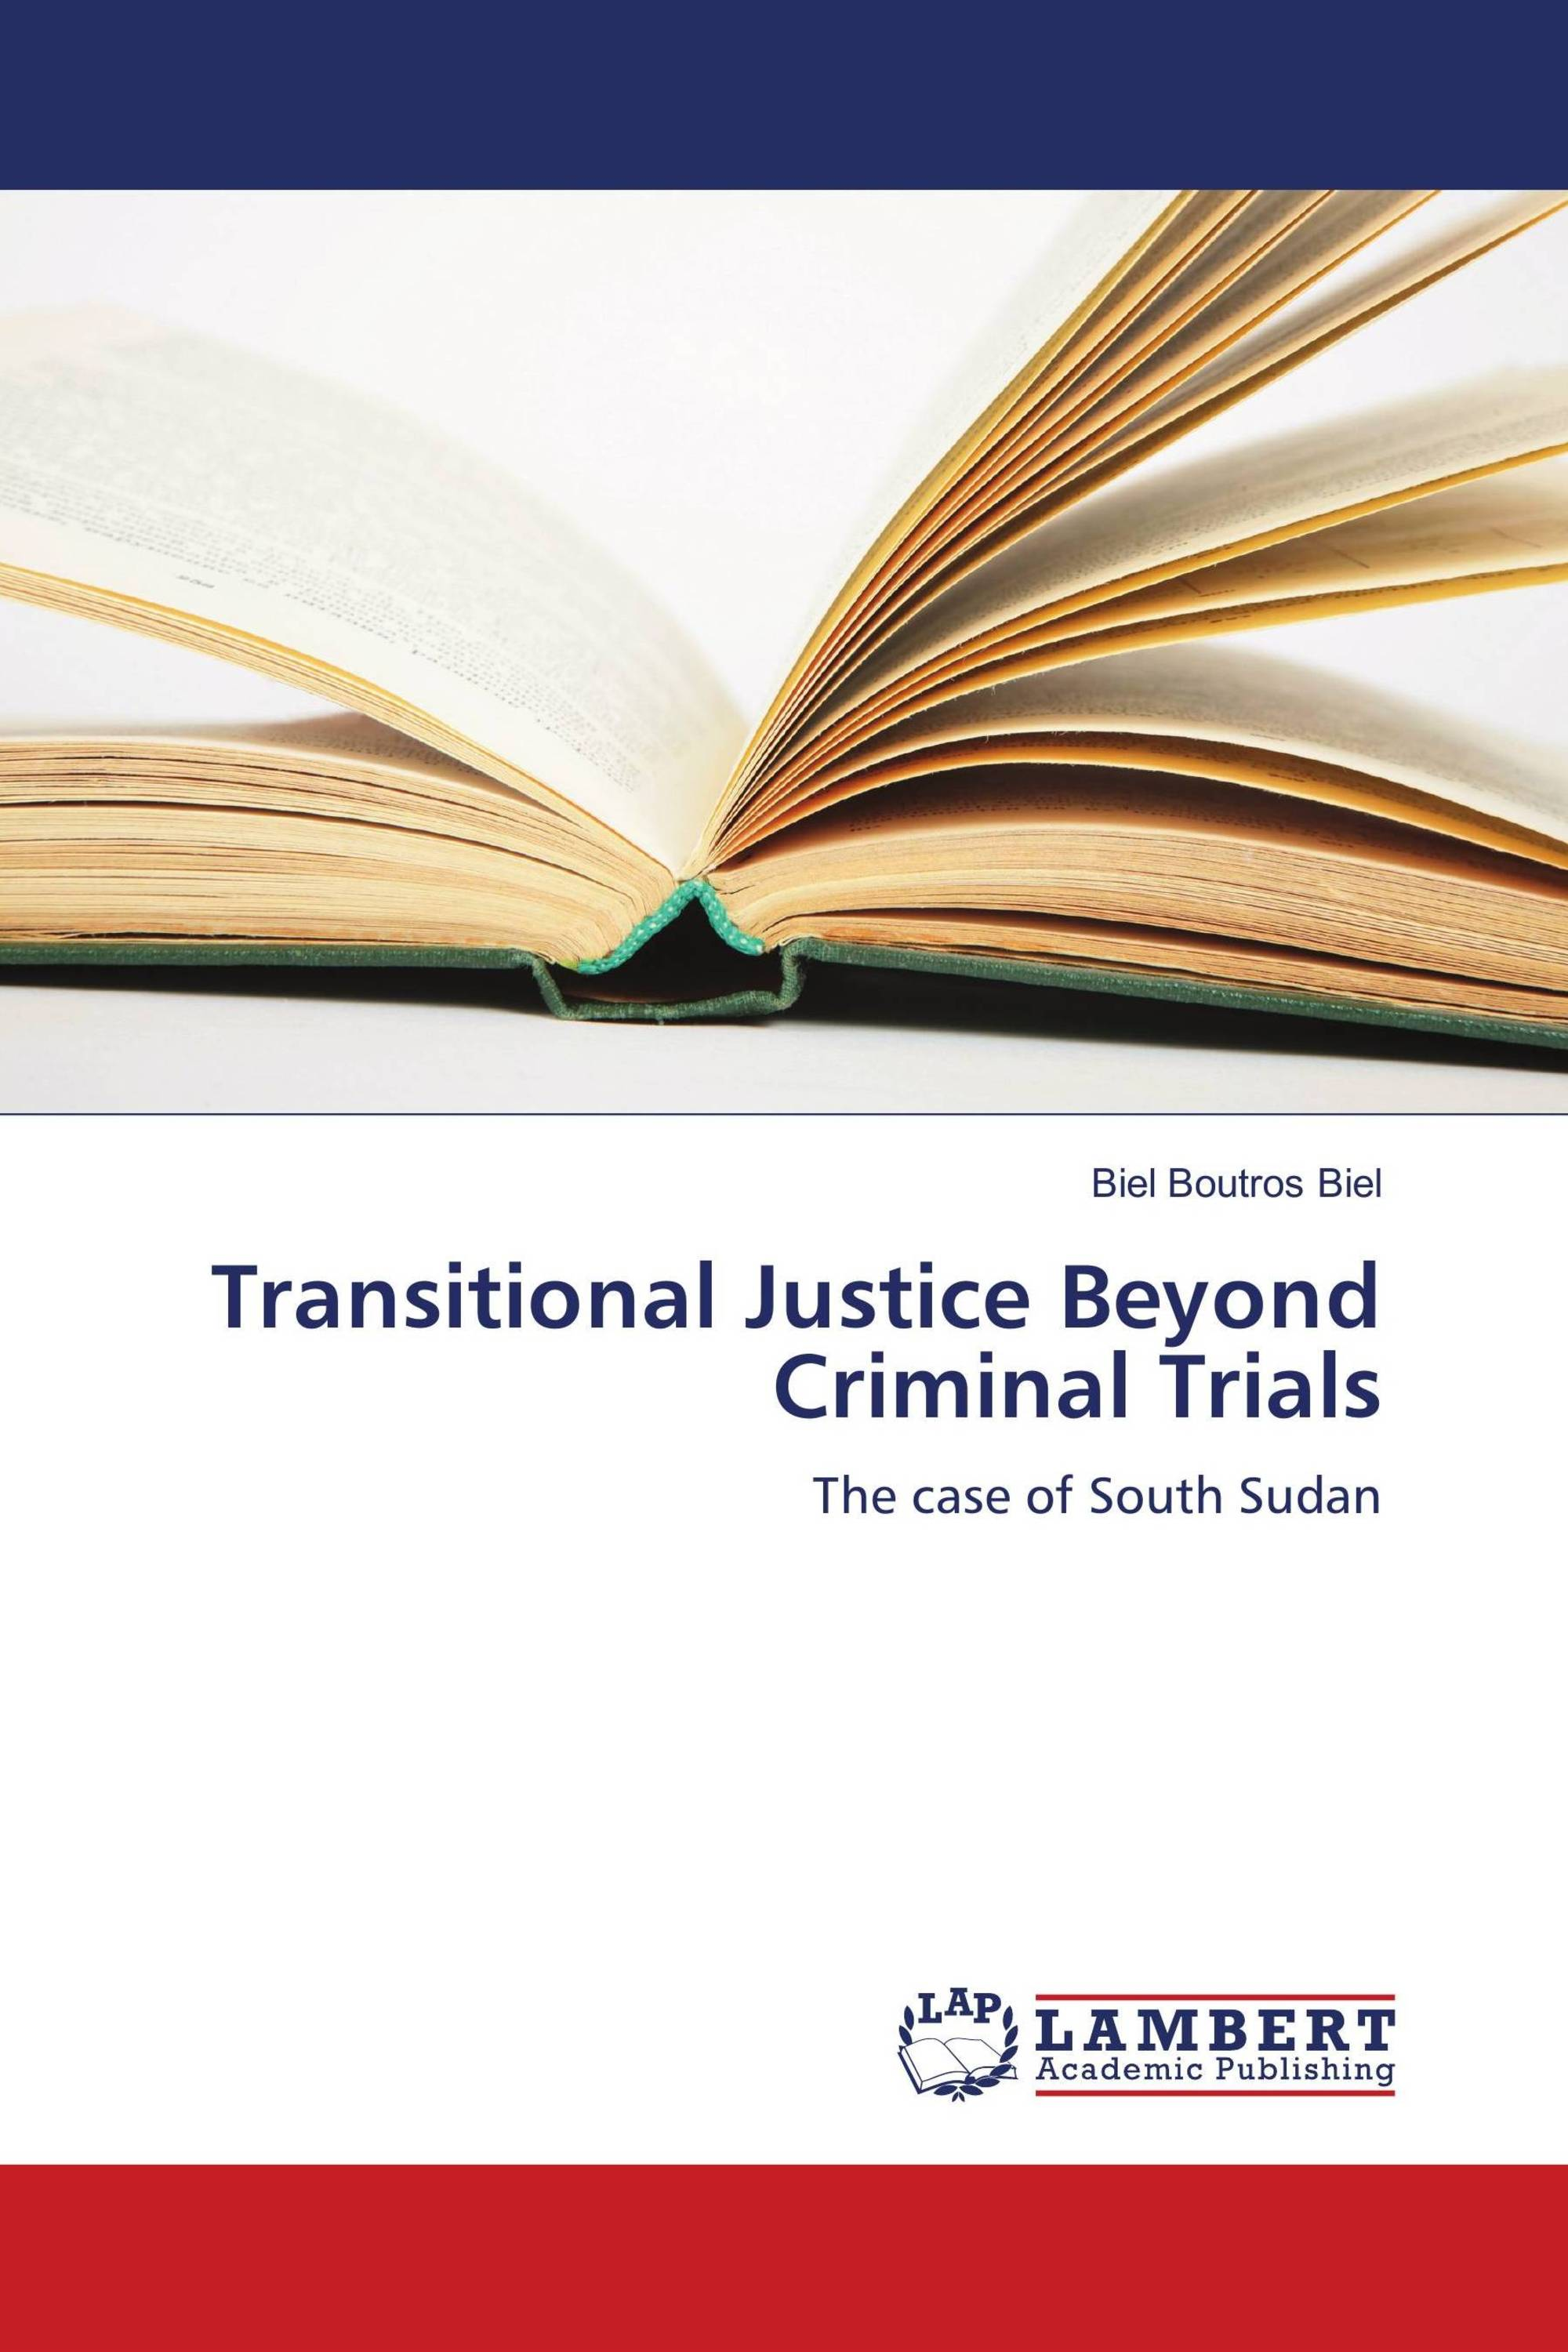 Transitional Justice Beyond Criminal Trials